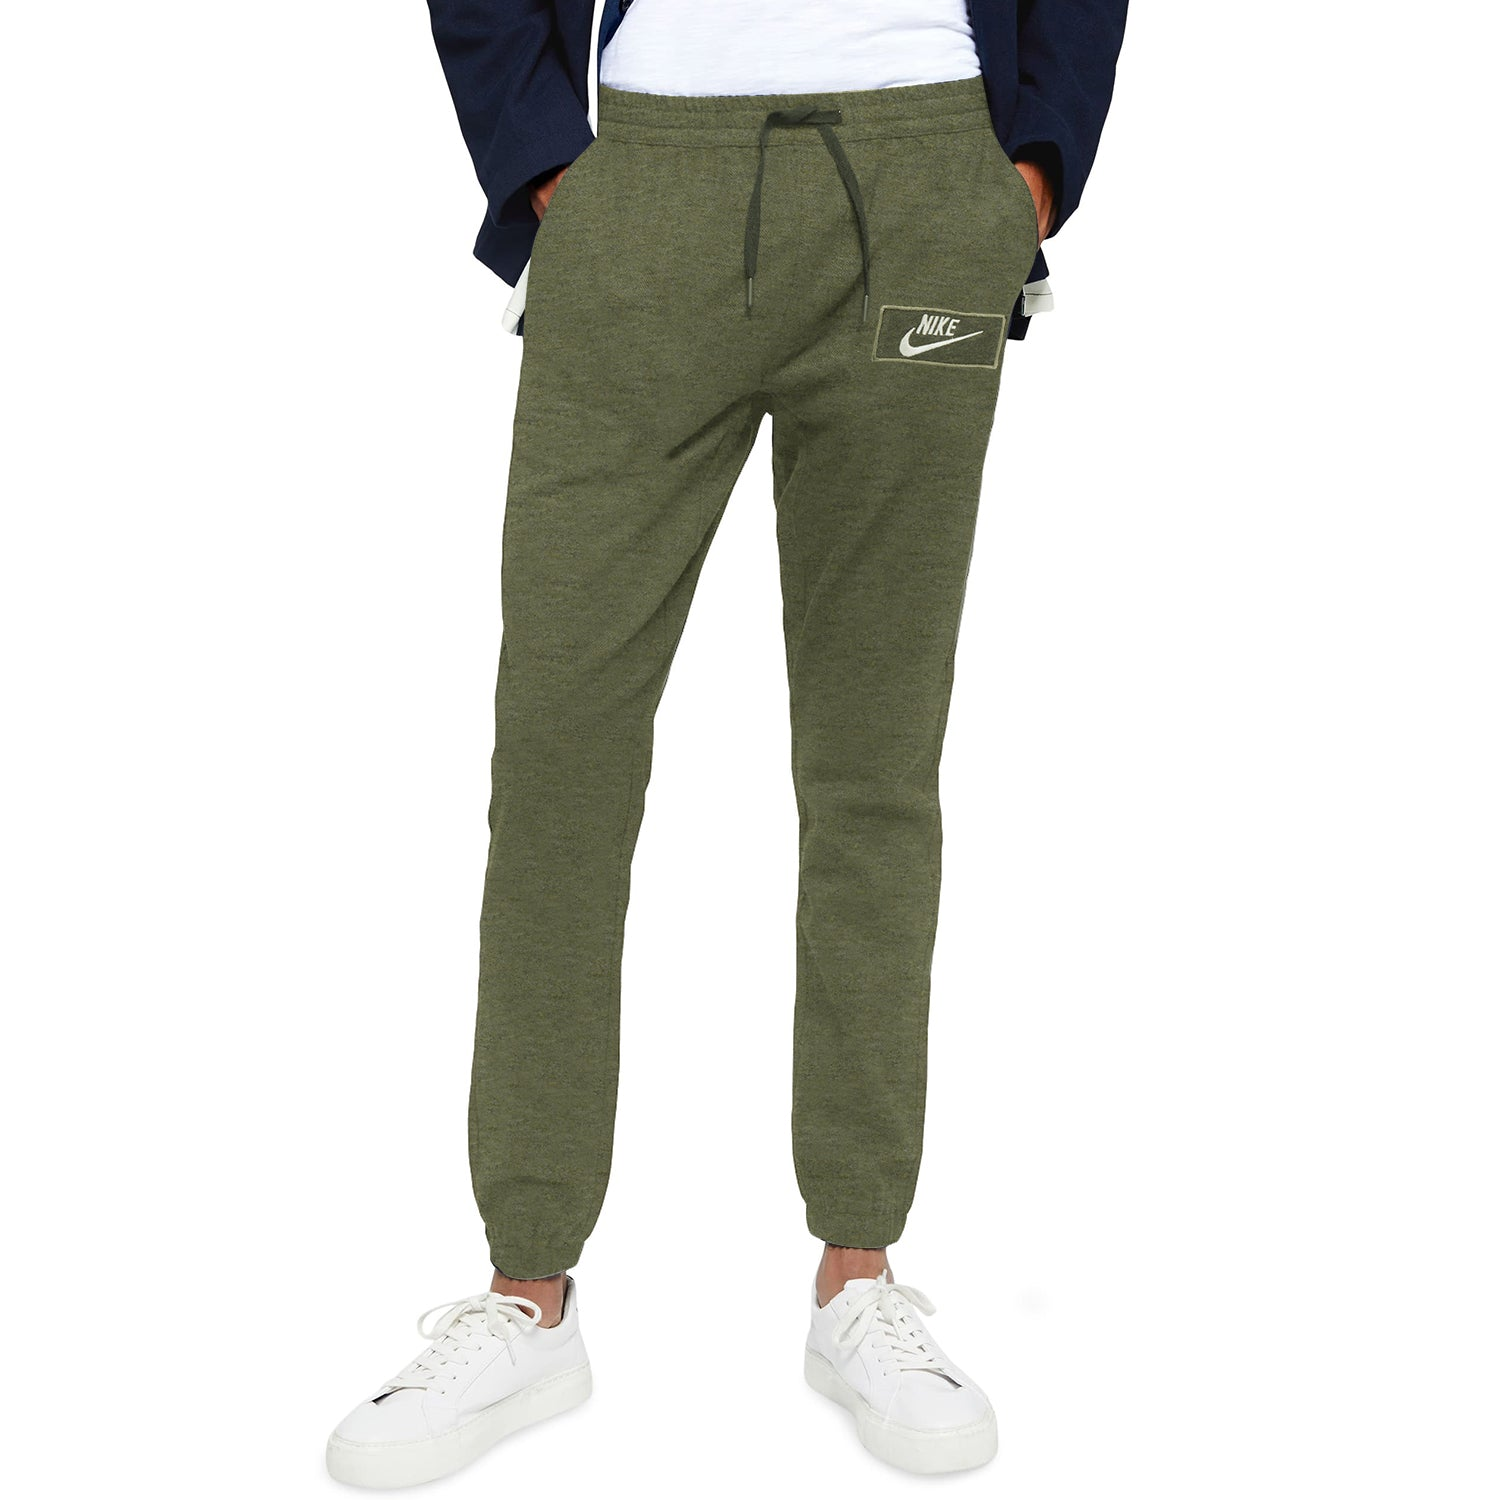 NK Fleece Gathering Fit Pant Style Jogging Trouser For Men-Olive Melange with White Embroidery-BE12892